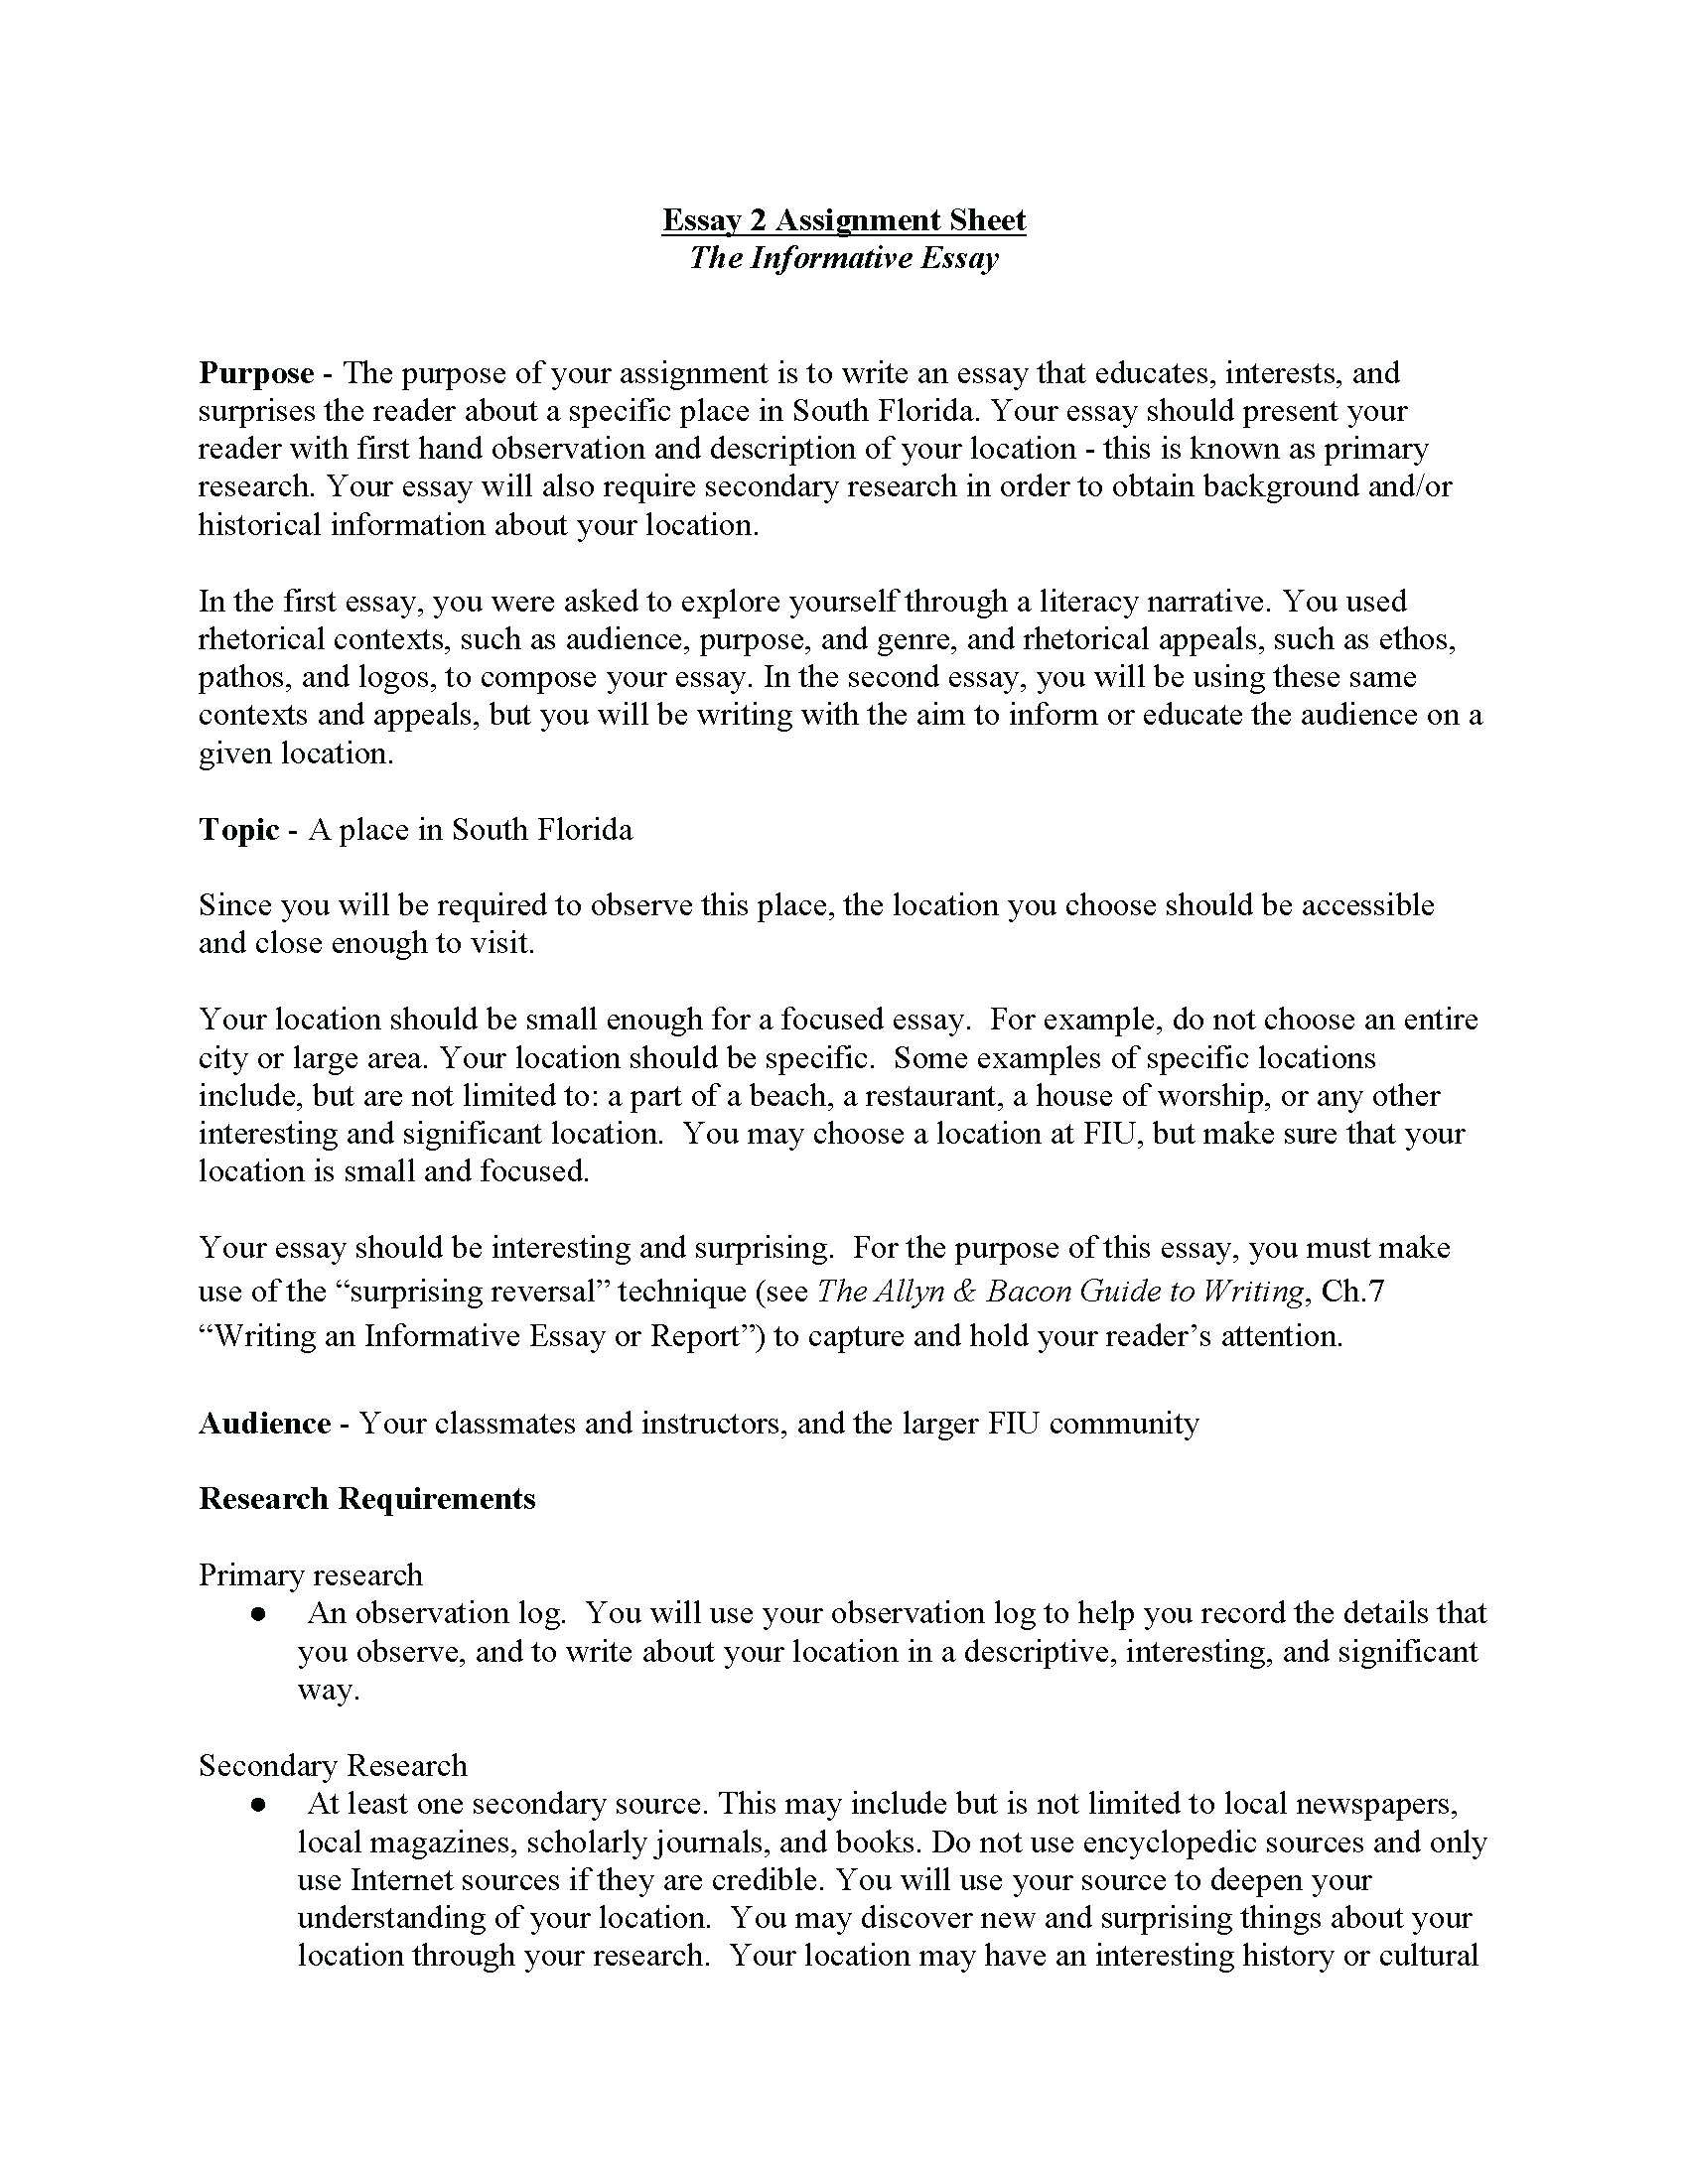 Persuasive Language Using Ethos Pathos And Logos Worksheet